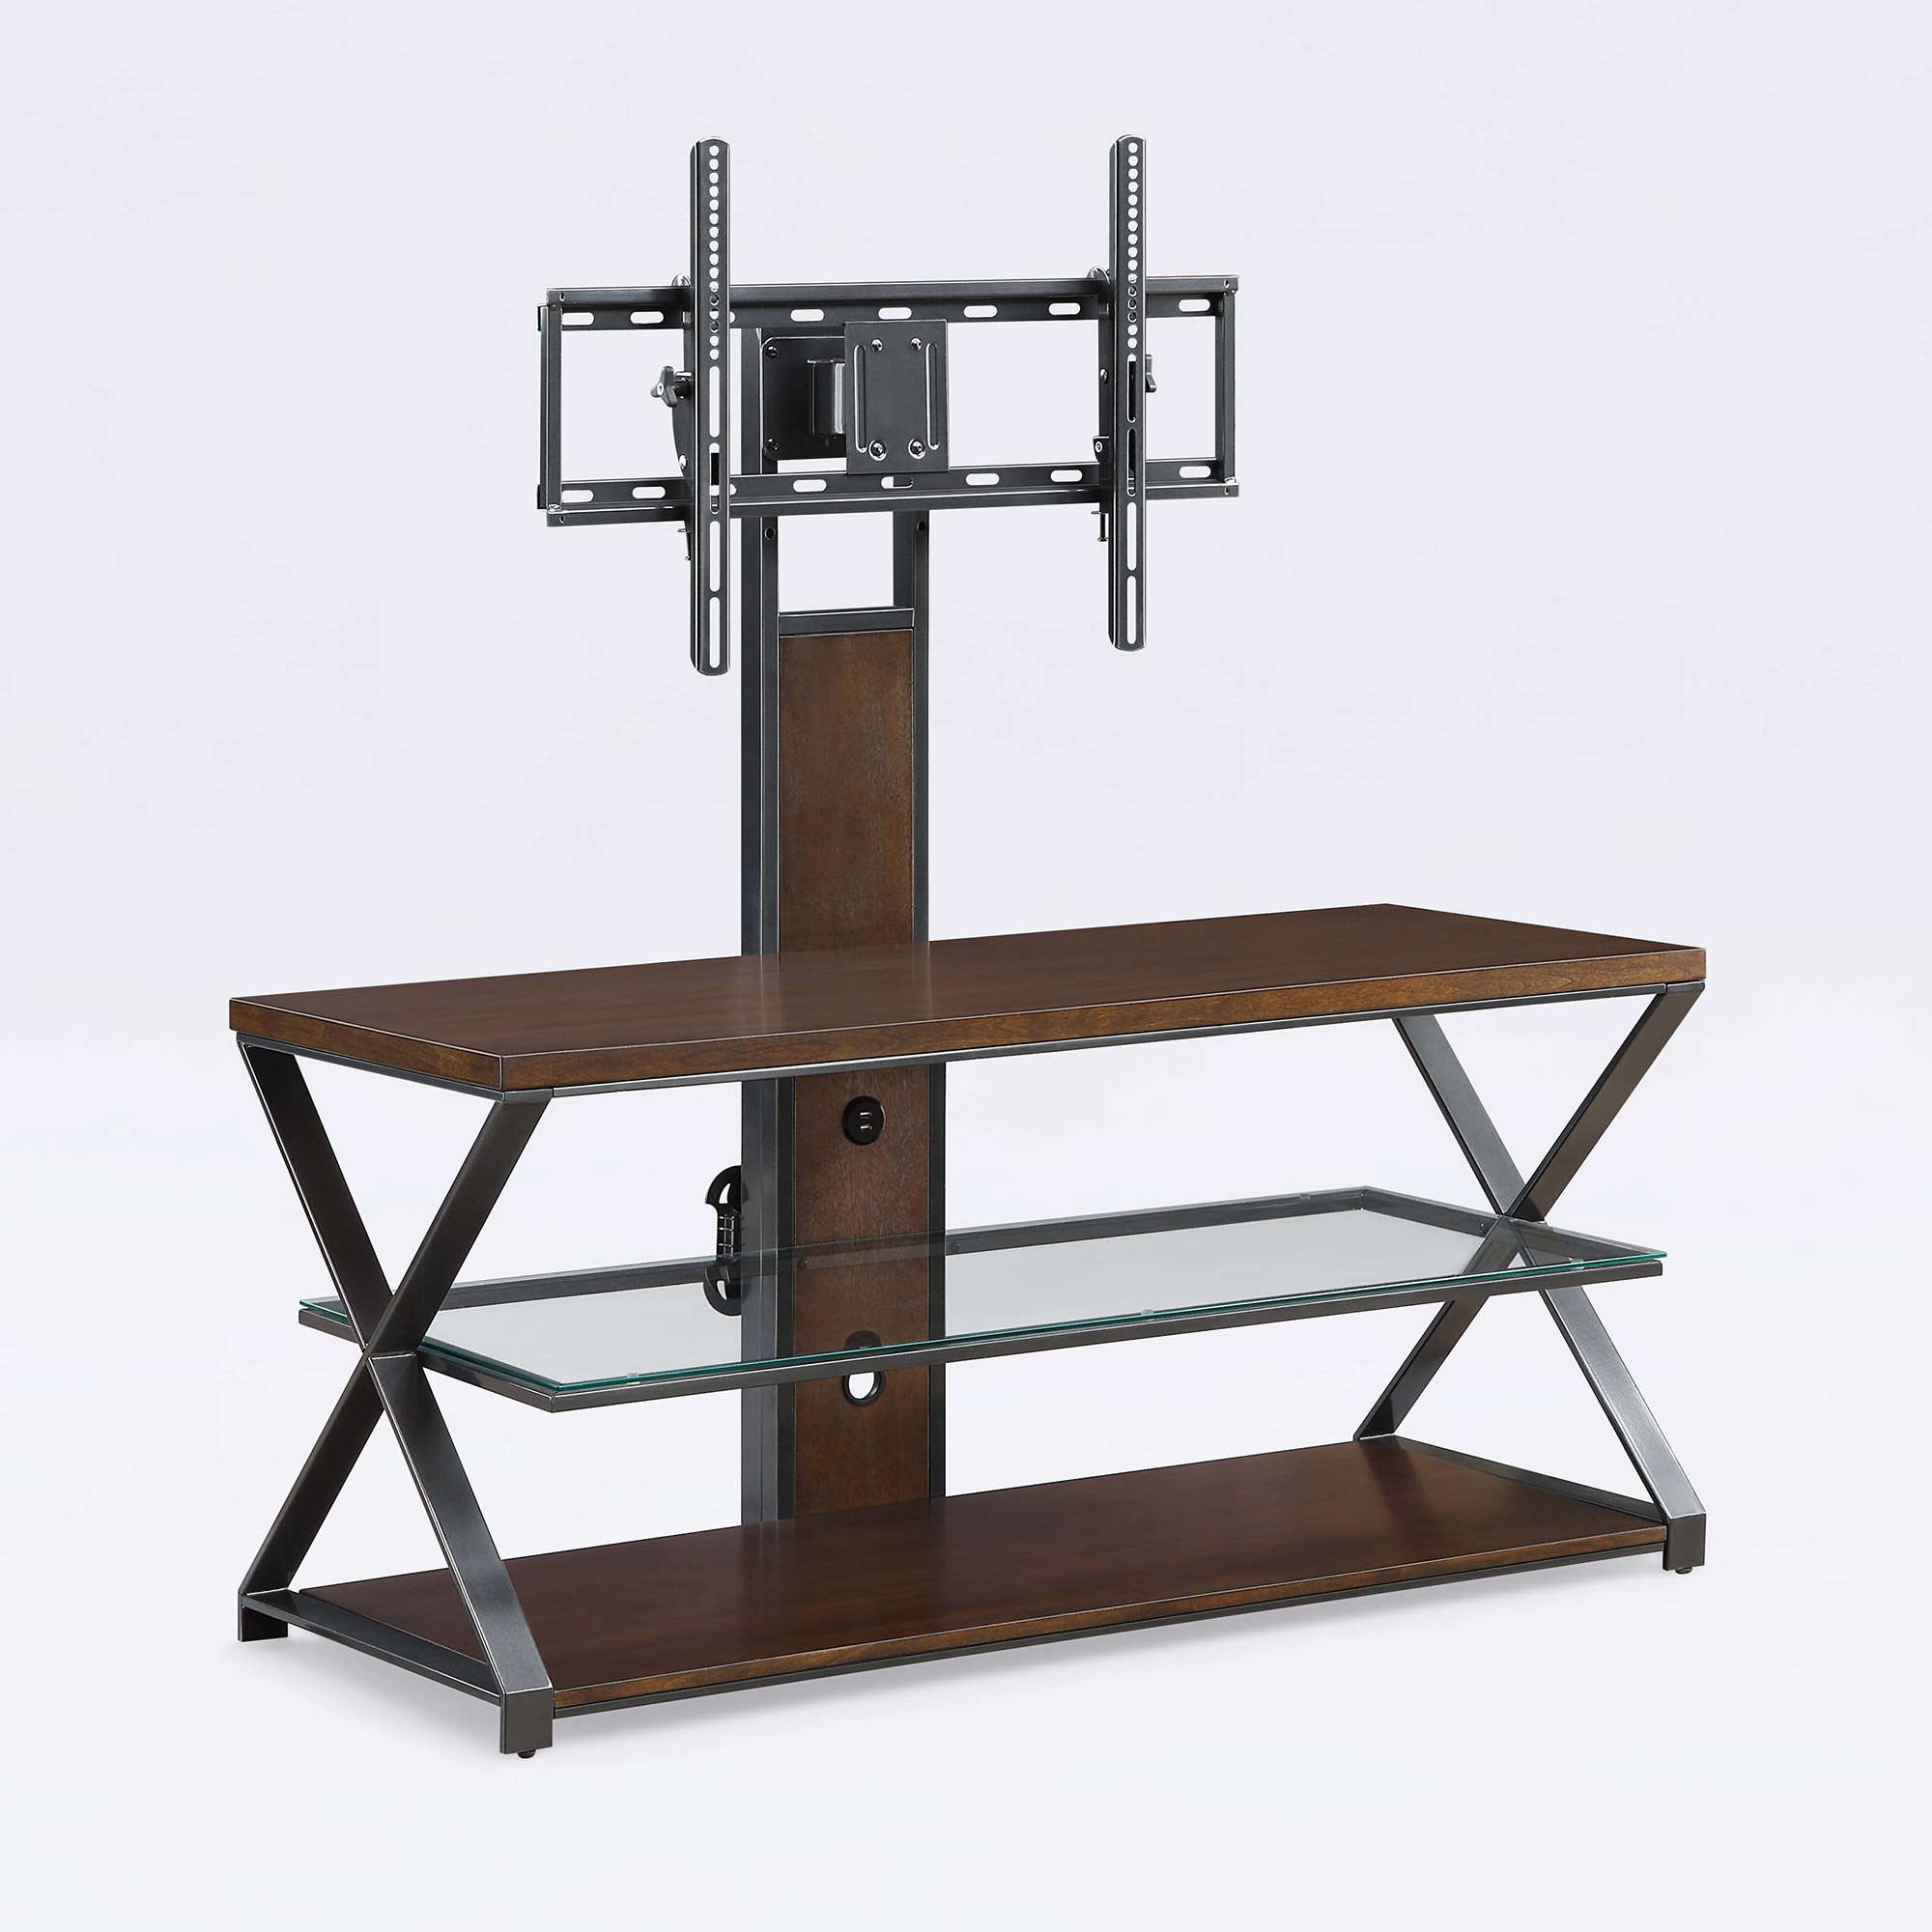 "Jaxon 3-In-1 Cognac Tv Stand For Tvs Up To 70"" - Walmart regarding Jaxon 65 Inch Tv Stands (Image 14 of 30)"